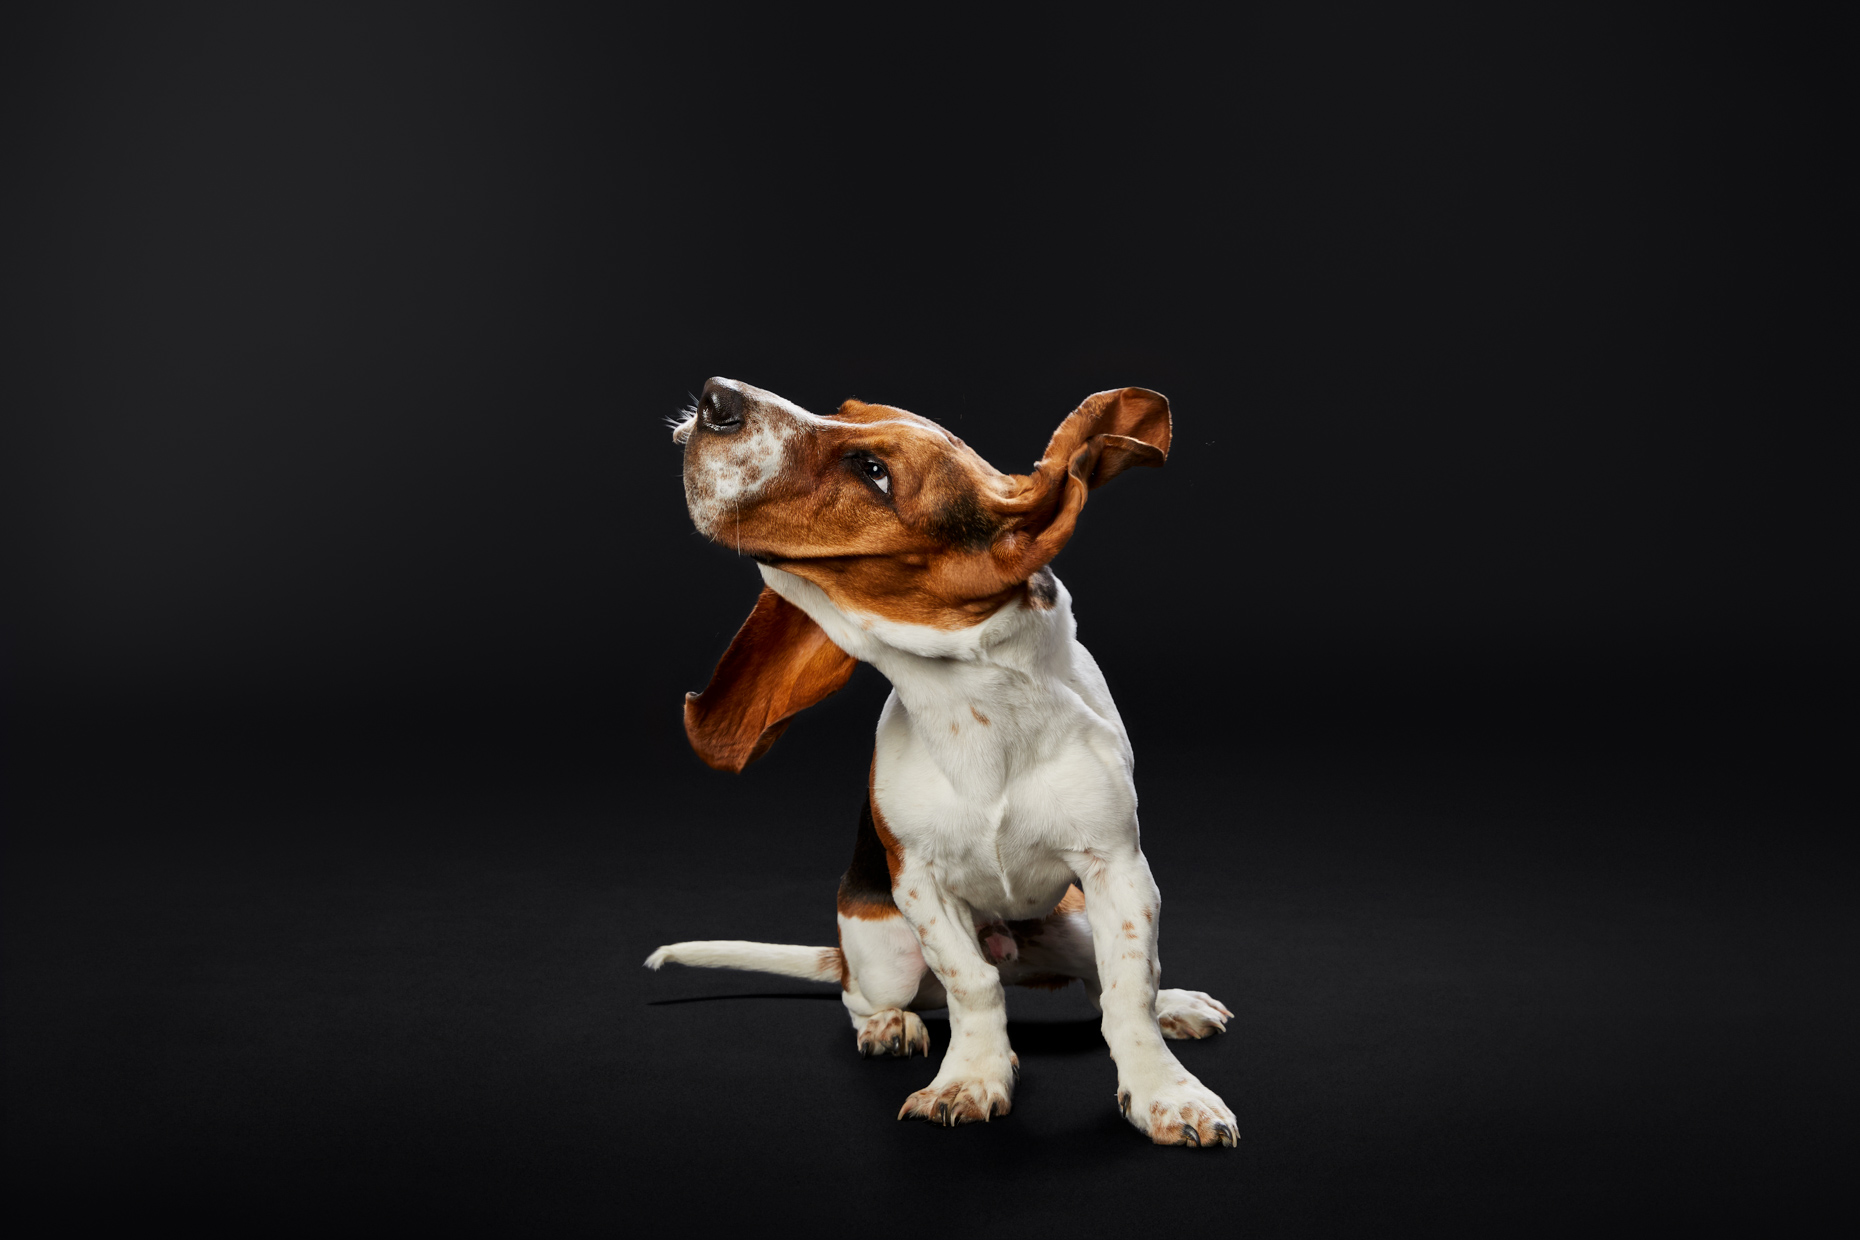 Dog Studio Photography | Shaking Basset Hound